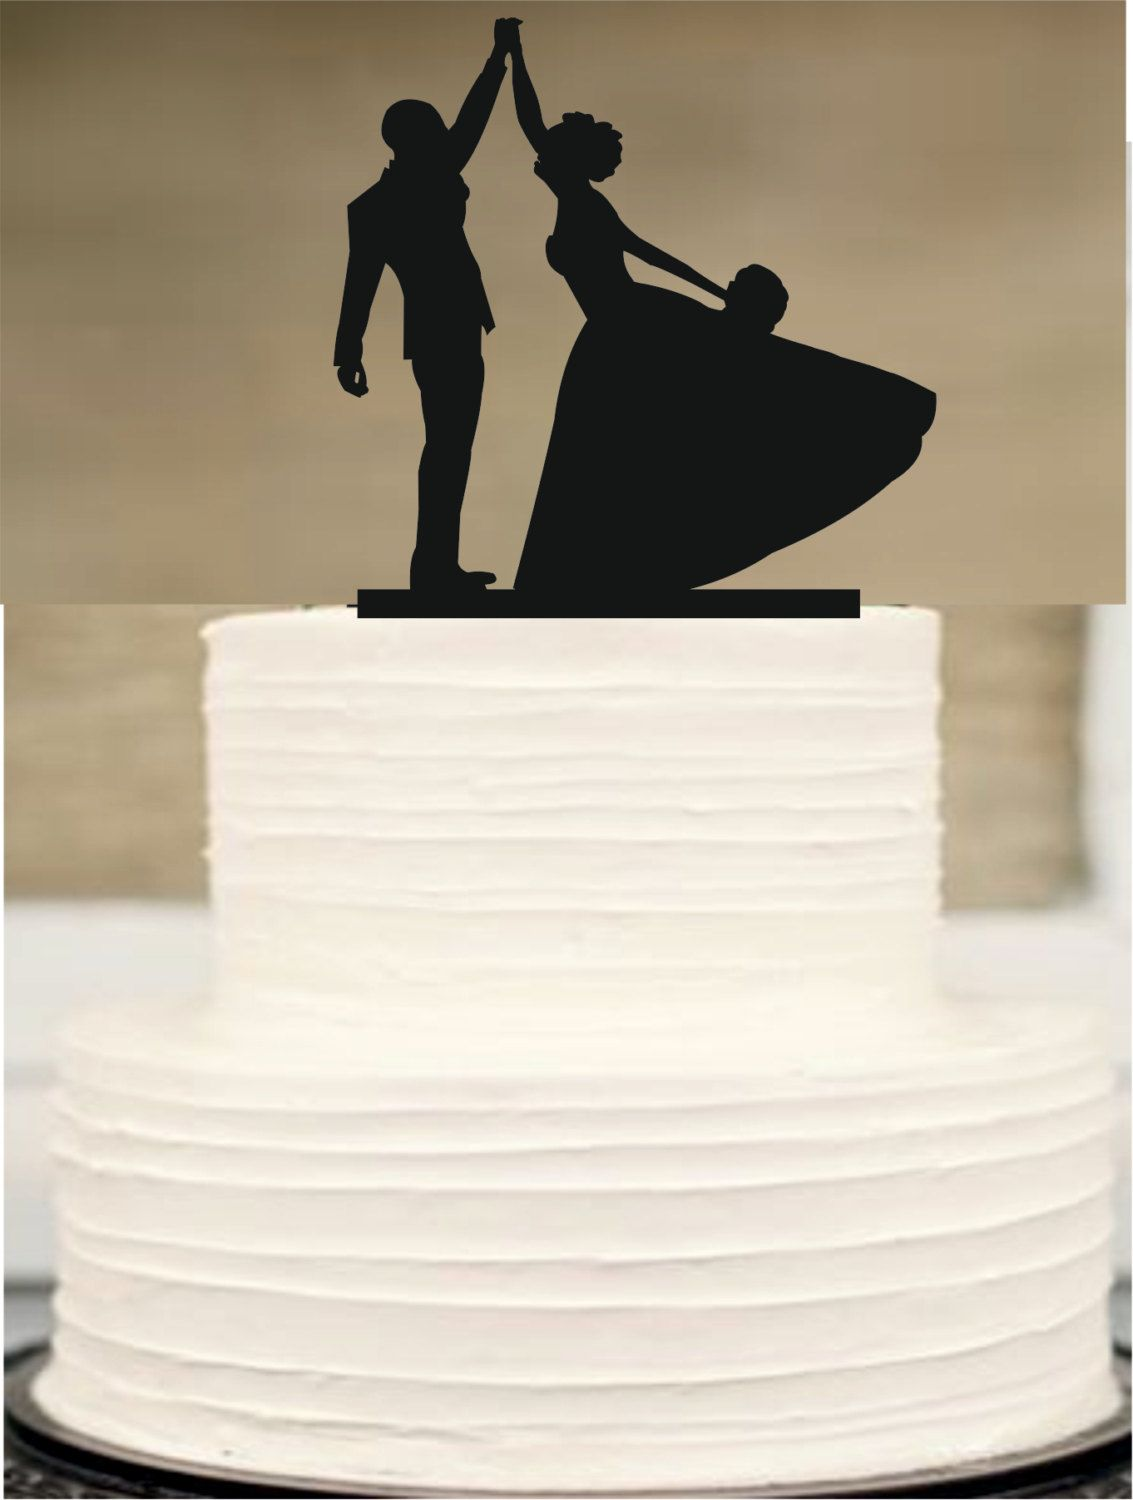 Funny Wedding Cake Topper Silhouette Wedding Cake Topper Bride And